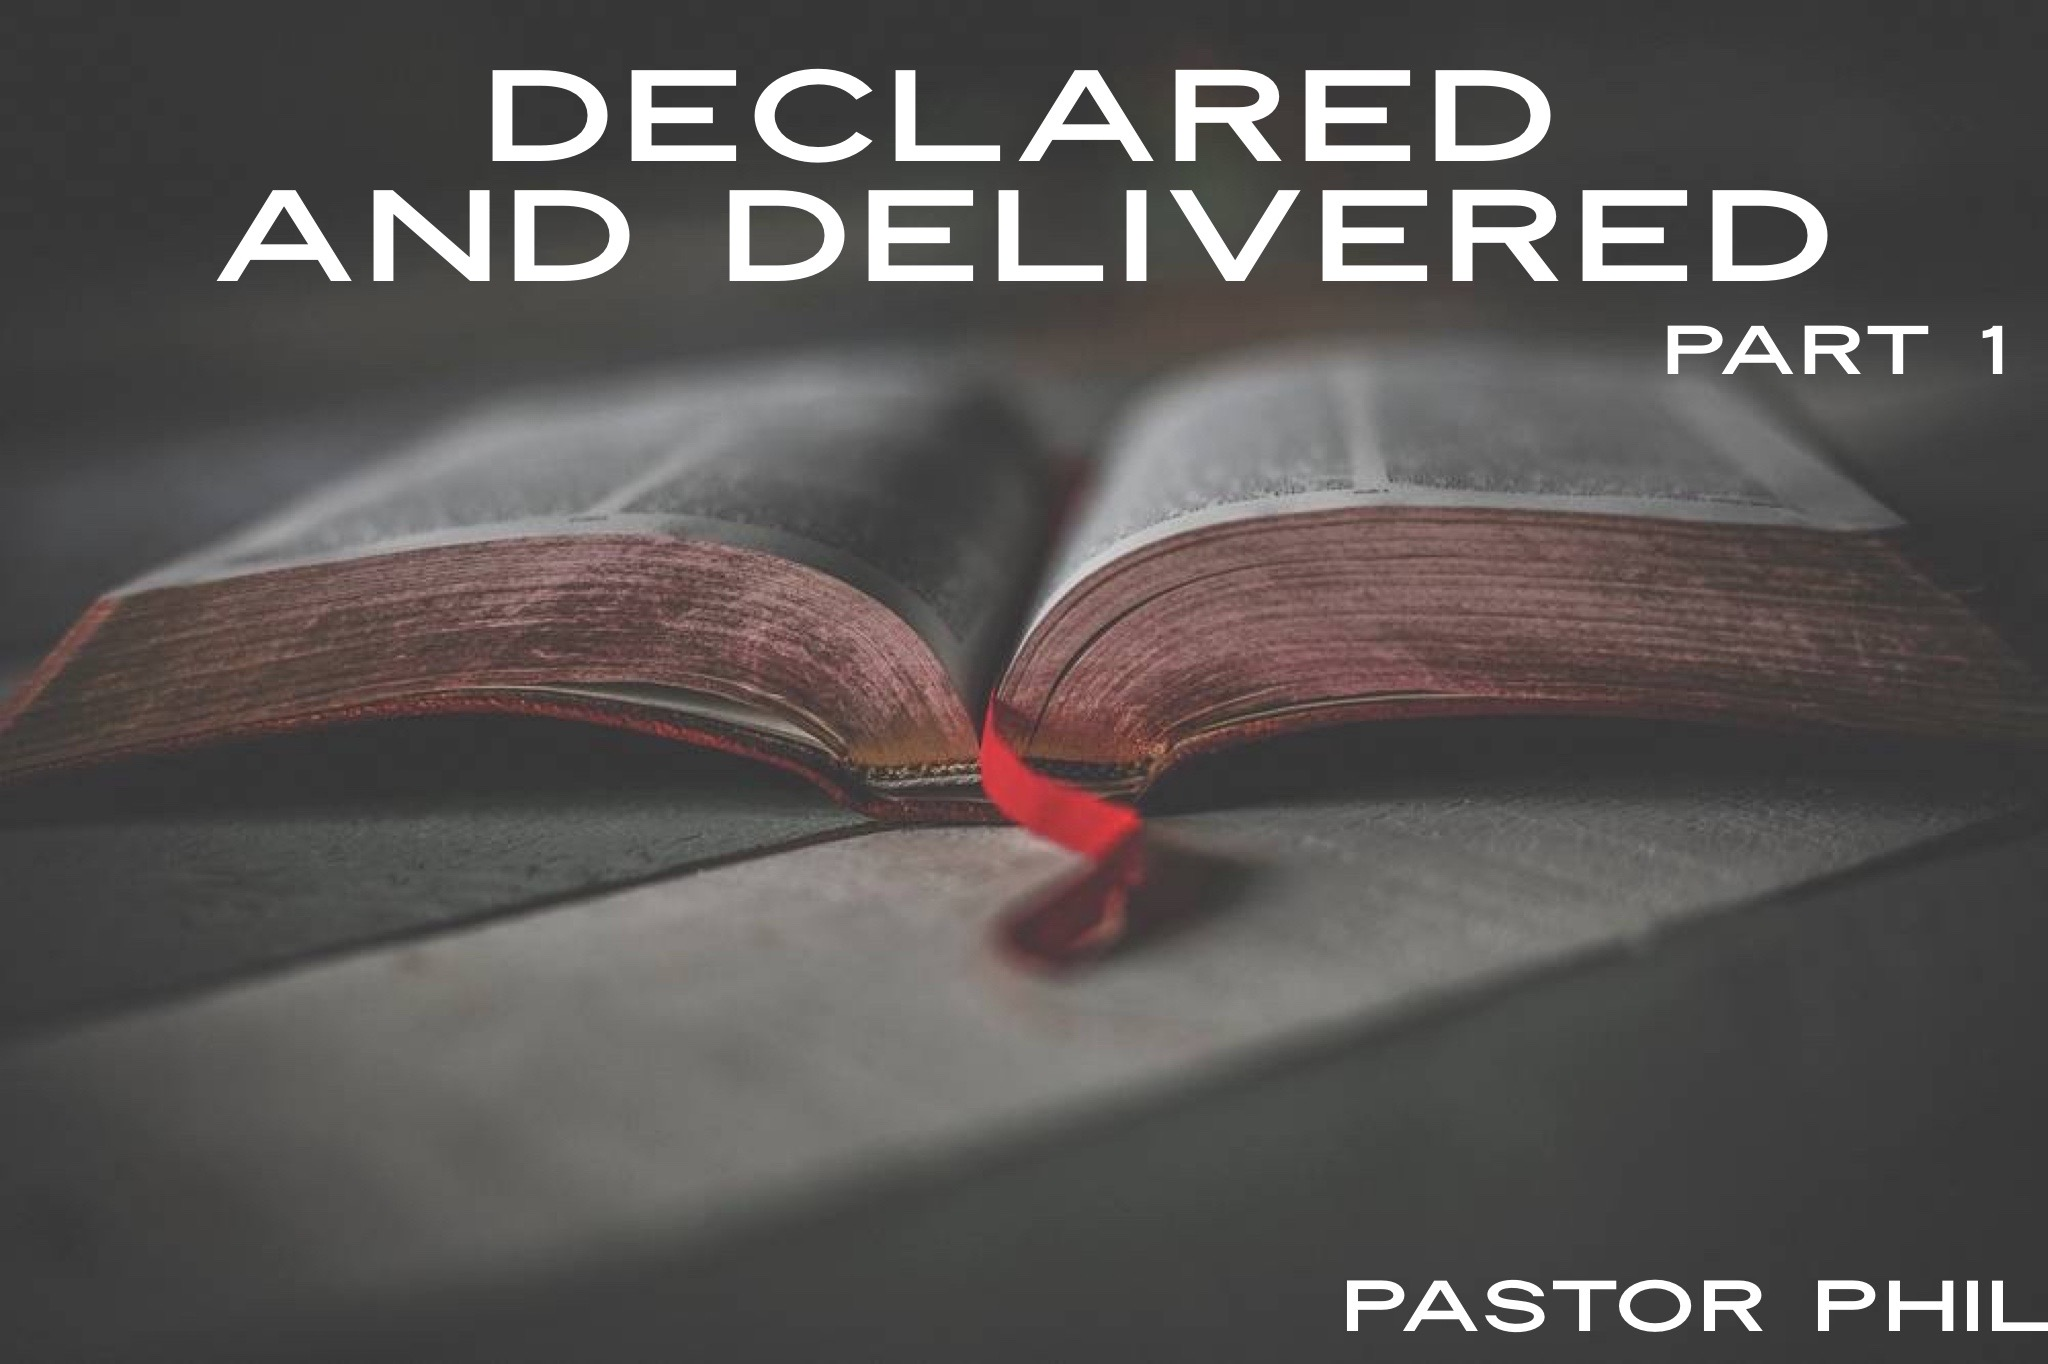 Declared and Delivered Pt 1